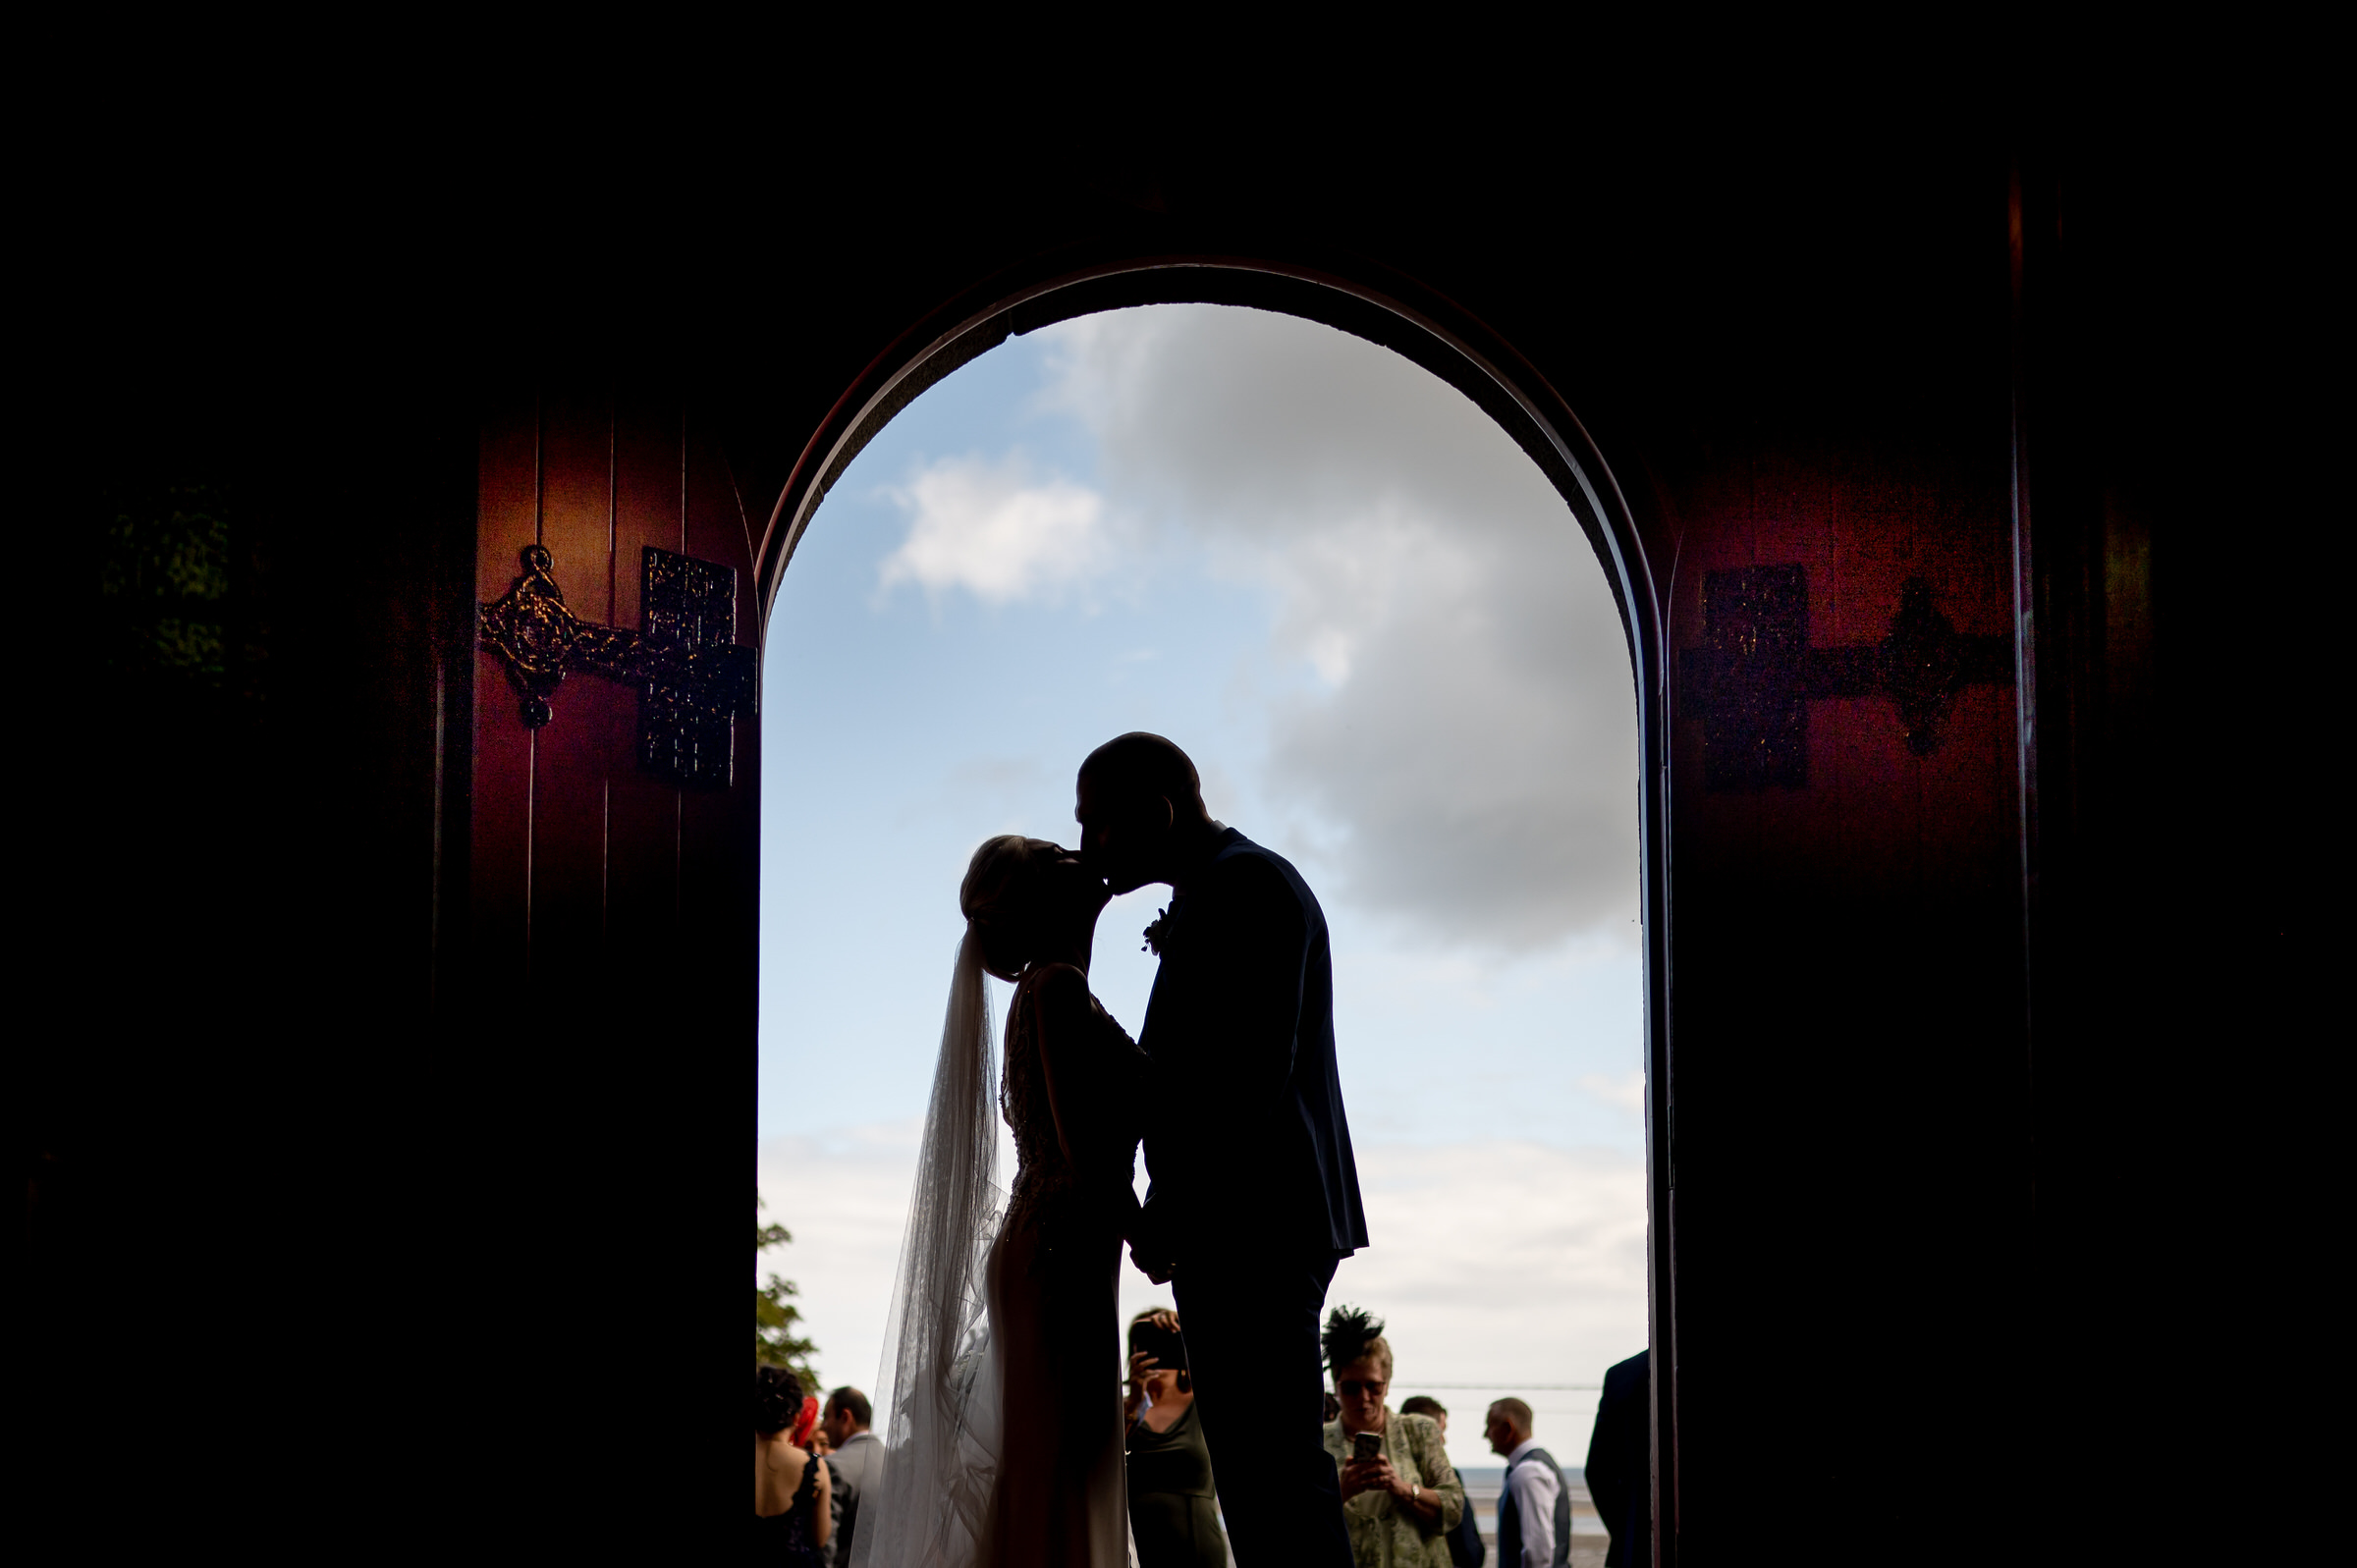 Silhouette kiss in archway - photo by John Gillooley